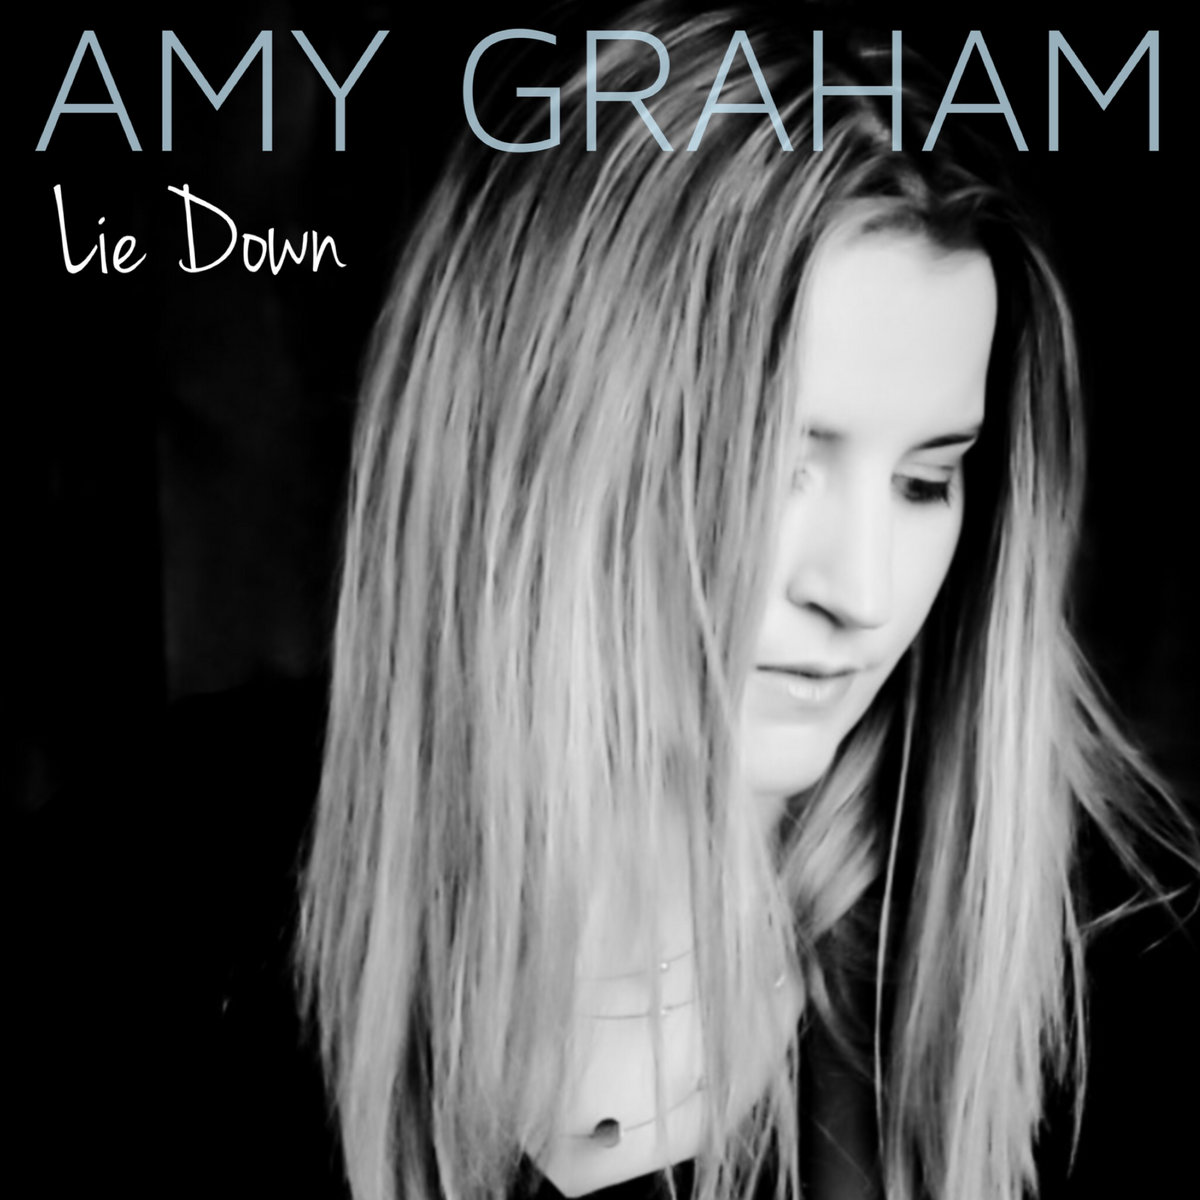 Lie Down by Amy Graham